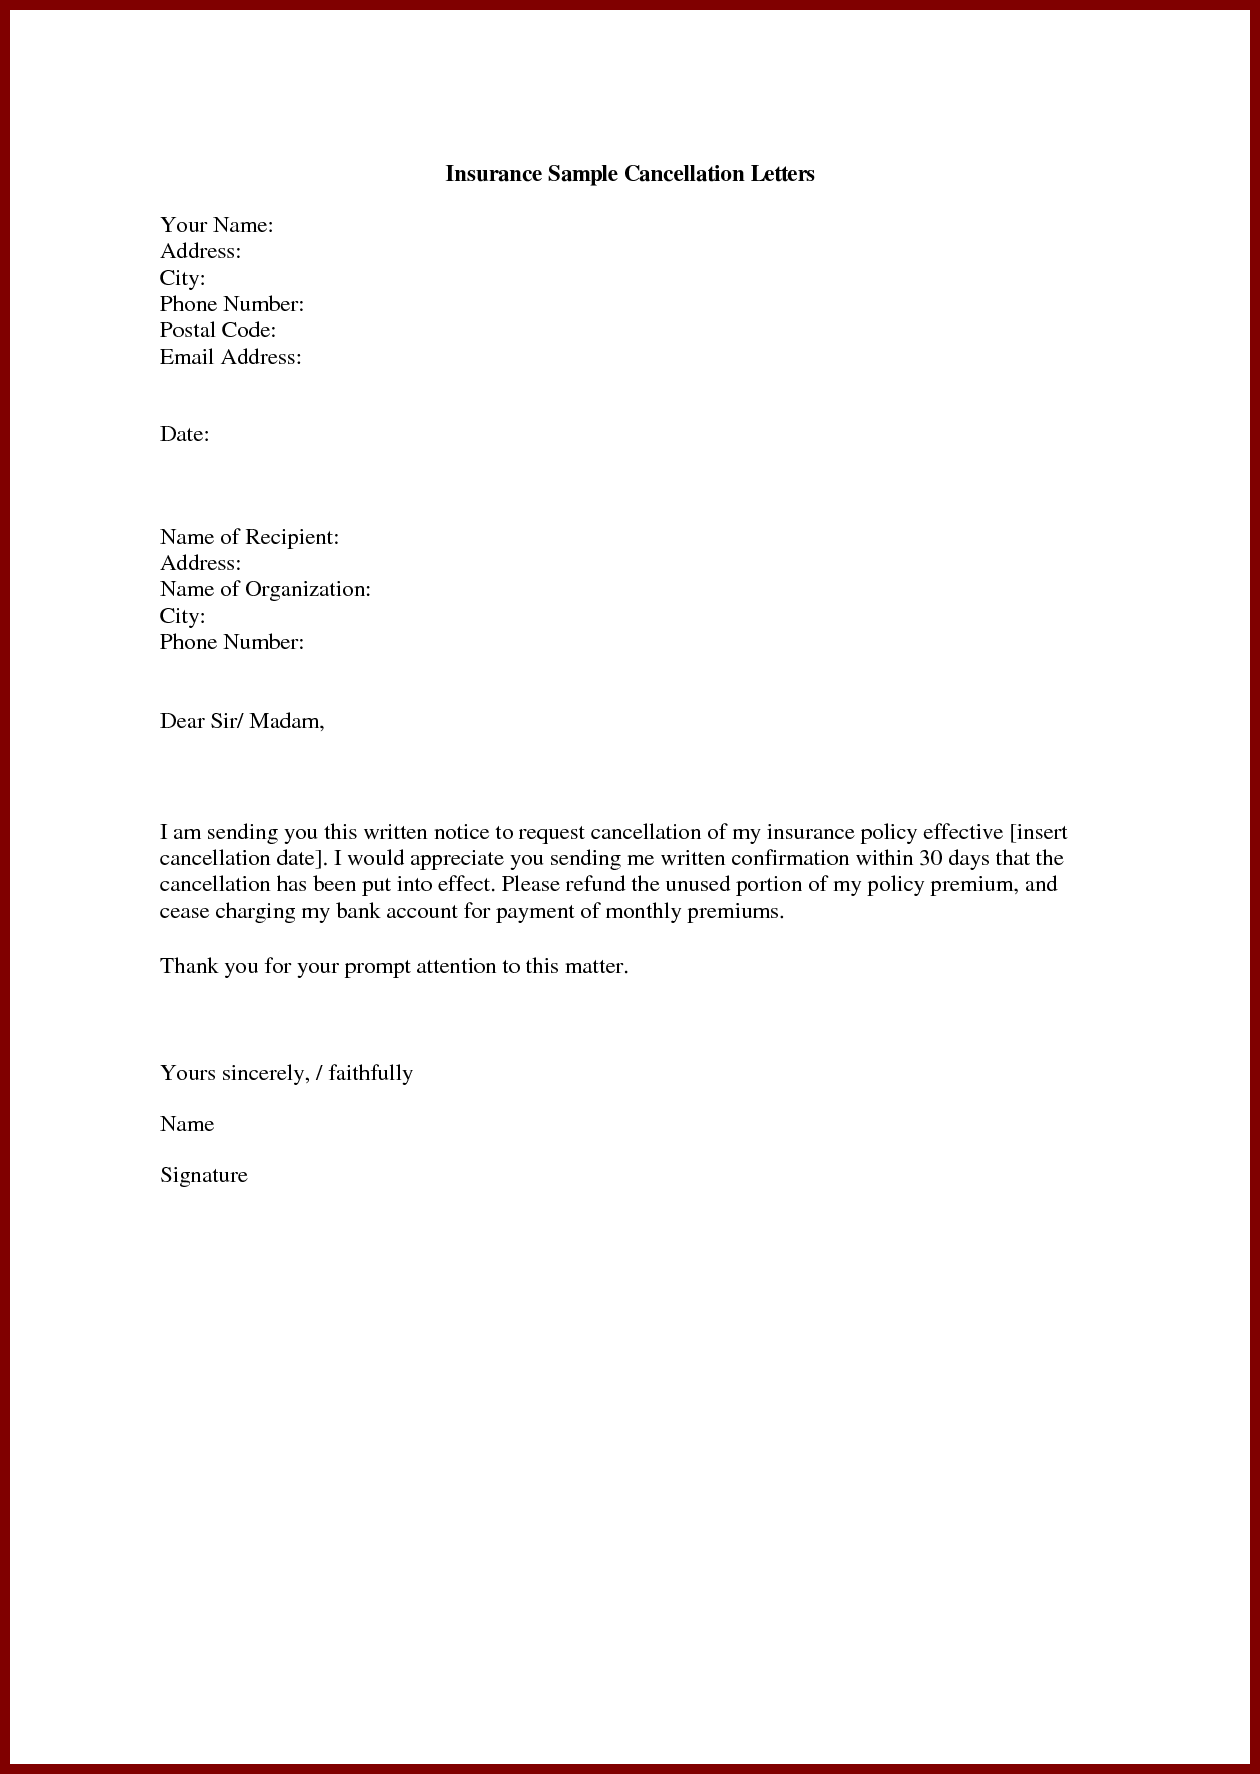 Insurance Cancellation Letter Life Write Sample Cover Templates Resignation Letter Resignation Letter Format